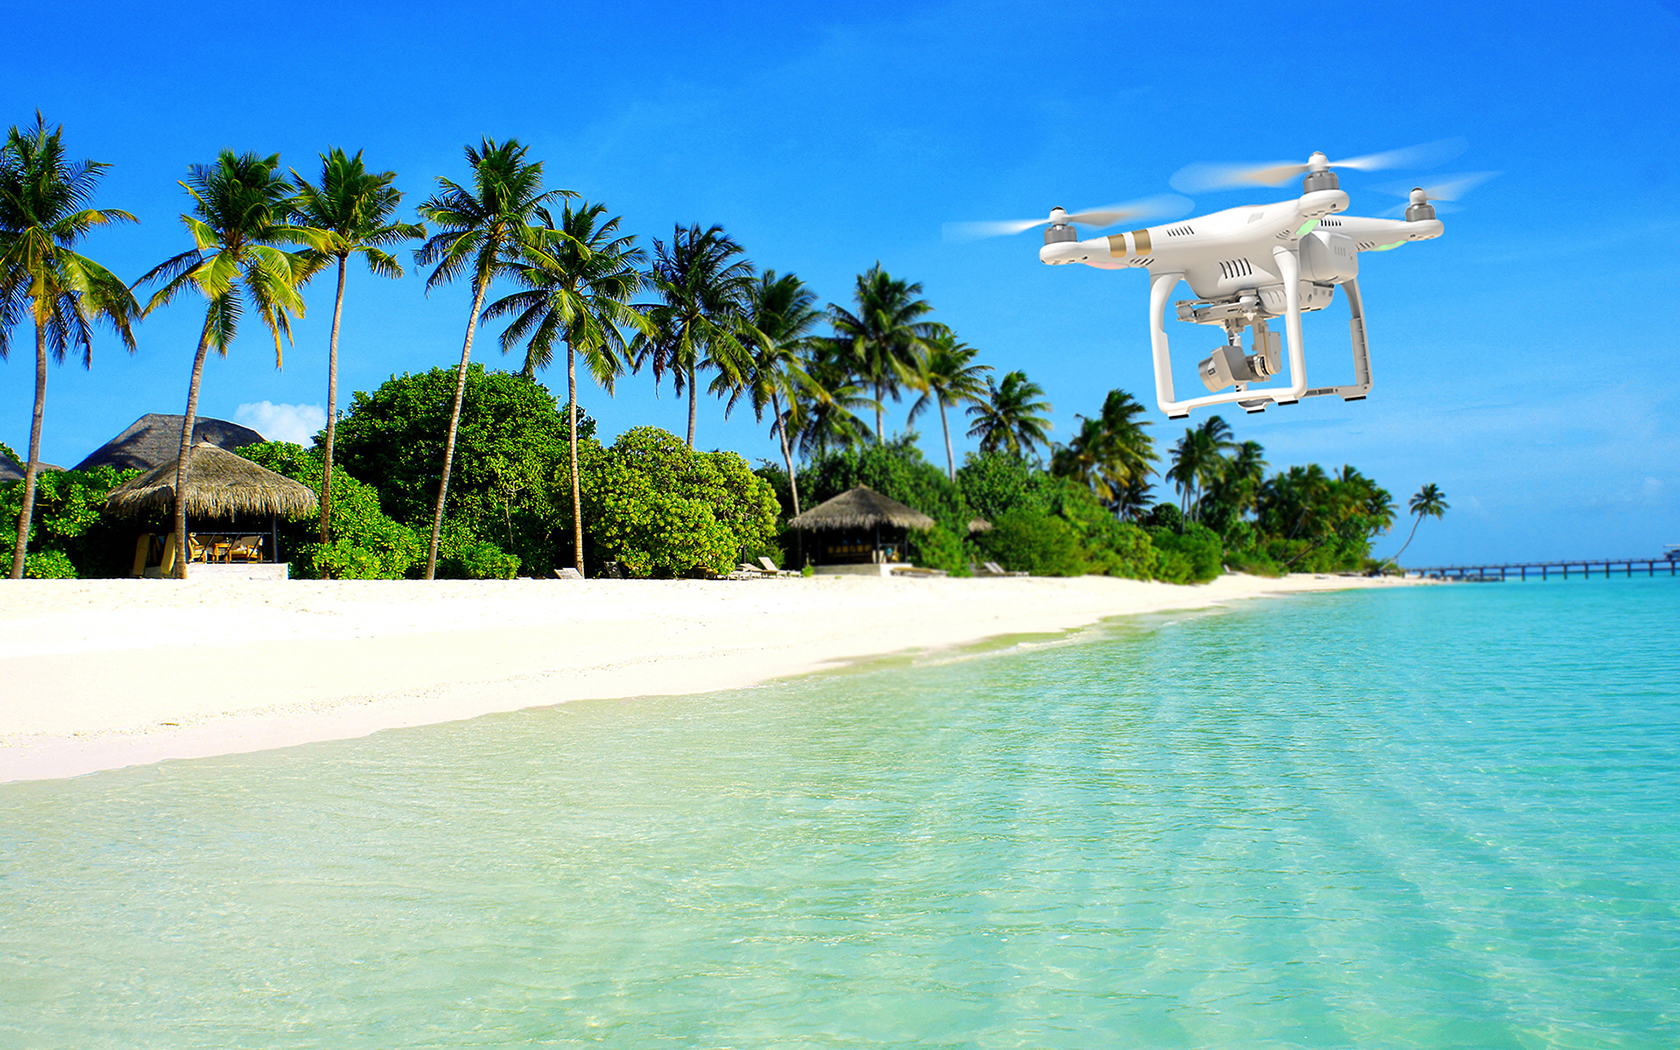 DJI Phantom At The Beach